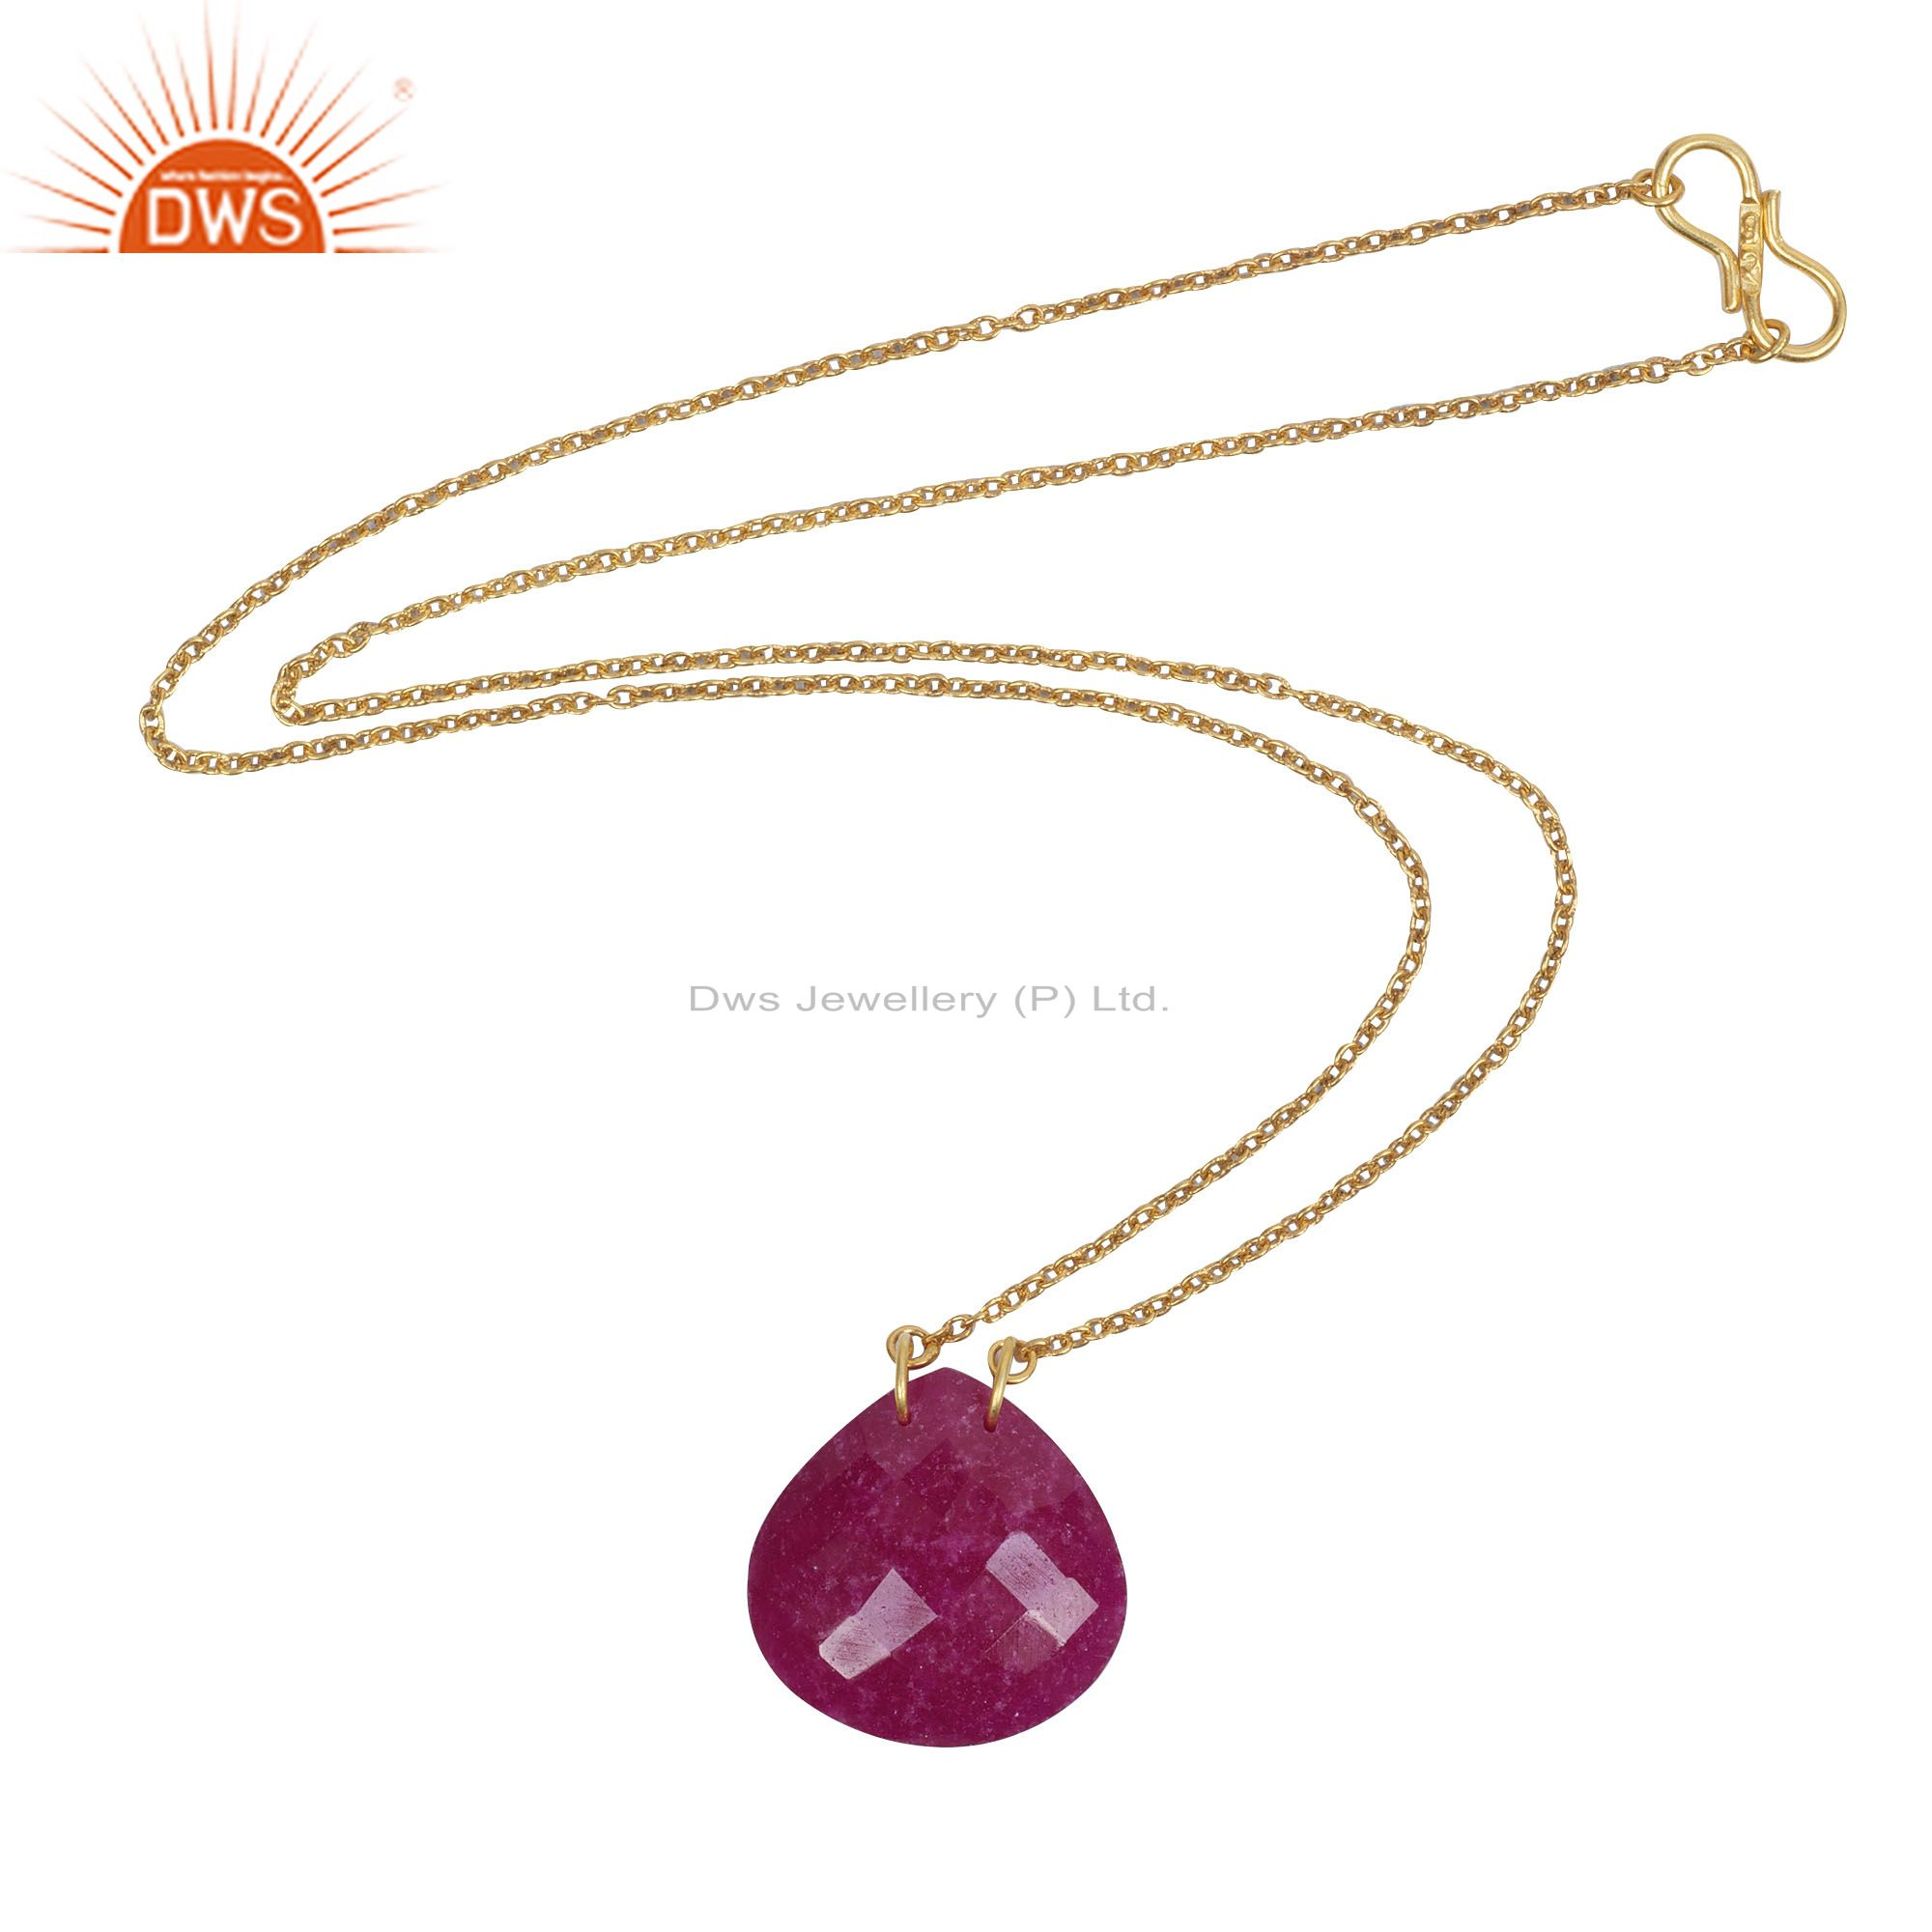 18K Yellow Gold Plated Sterling Silver Ruby Gemstone Pendant Chain Necklace